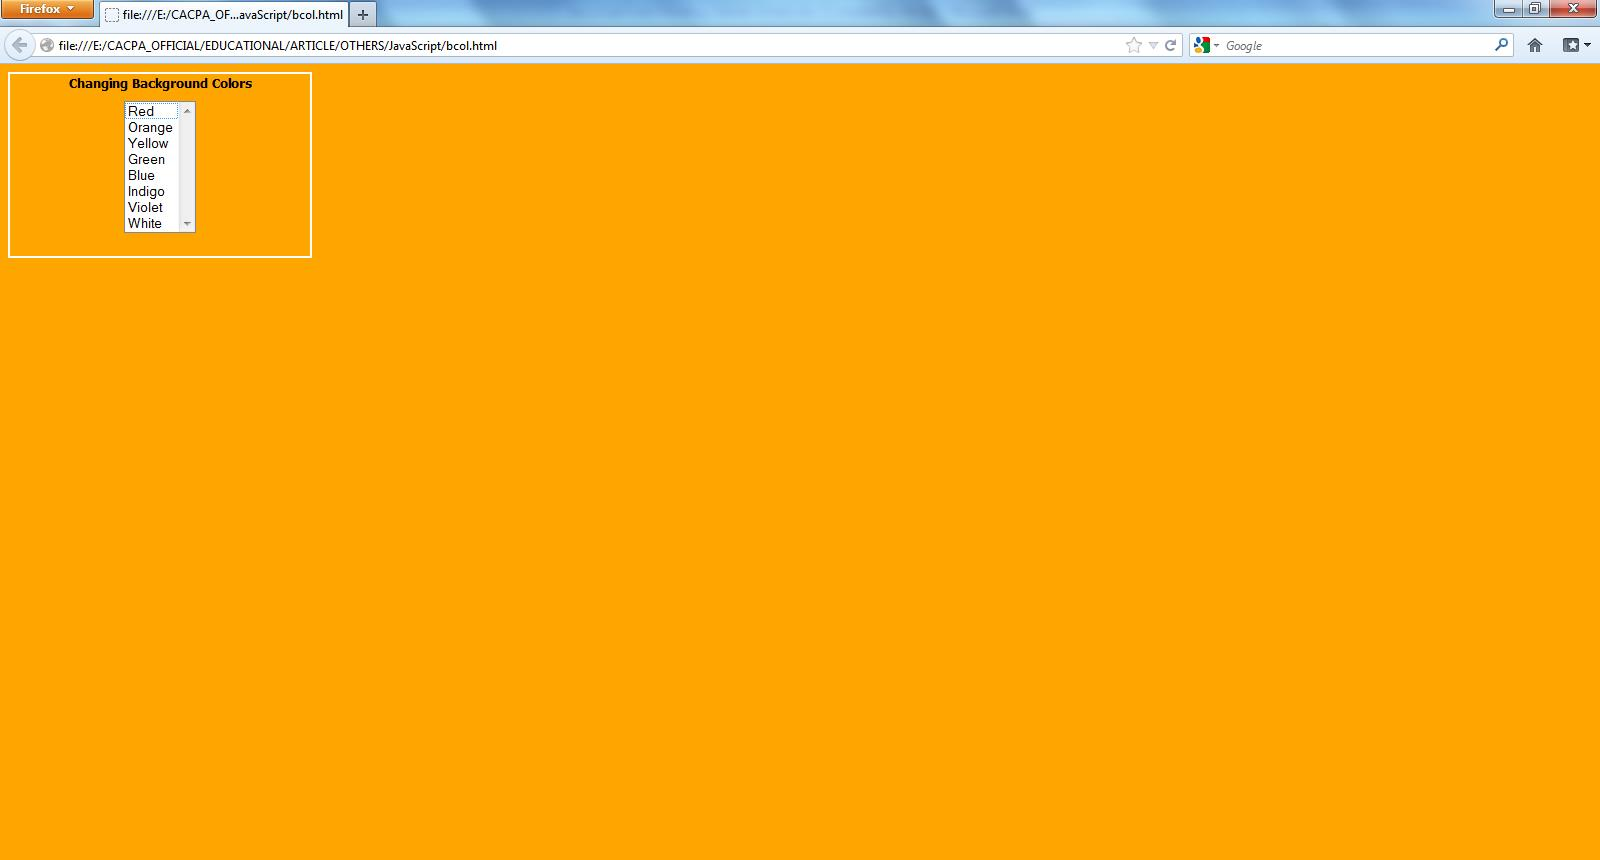 Simple javascript code is invoked when a color is selected and the color of the background is changed accordingly